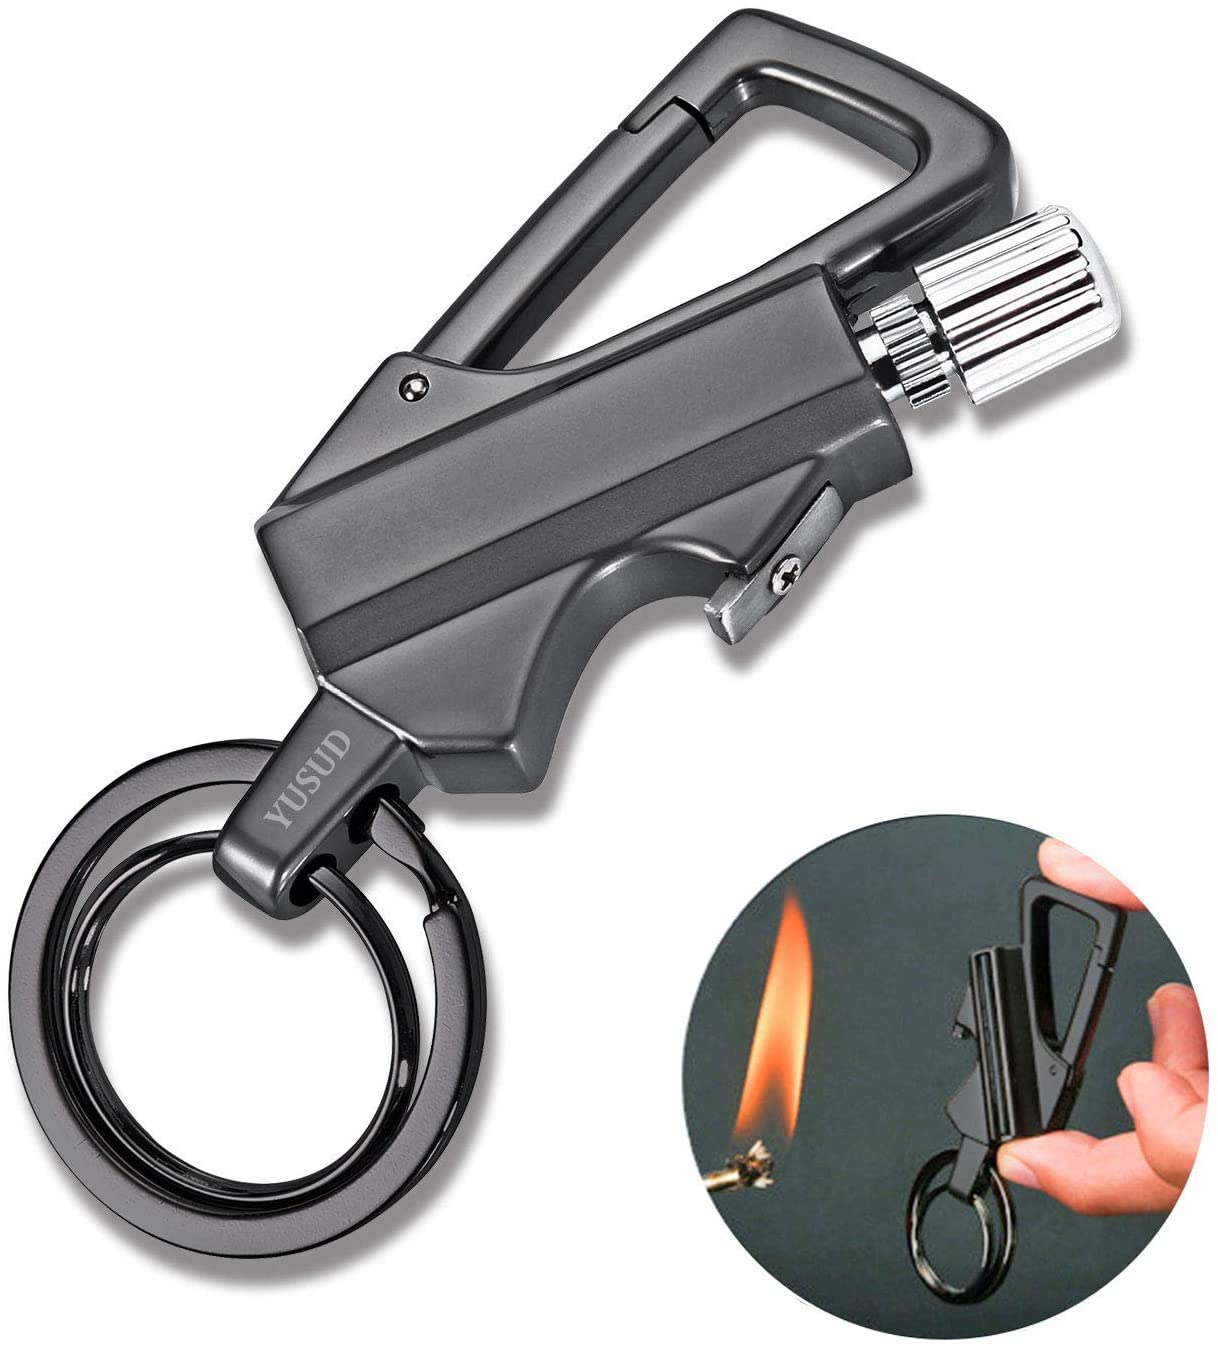 6 X 1 Fast shipping !!1 Safety and protection  FLAMAZING  Keychain for HER...Set Combo of 6 pieces in one